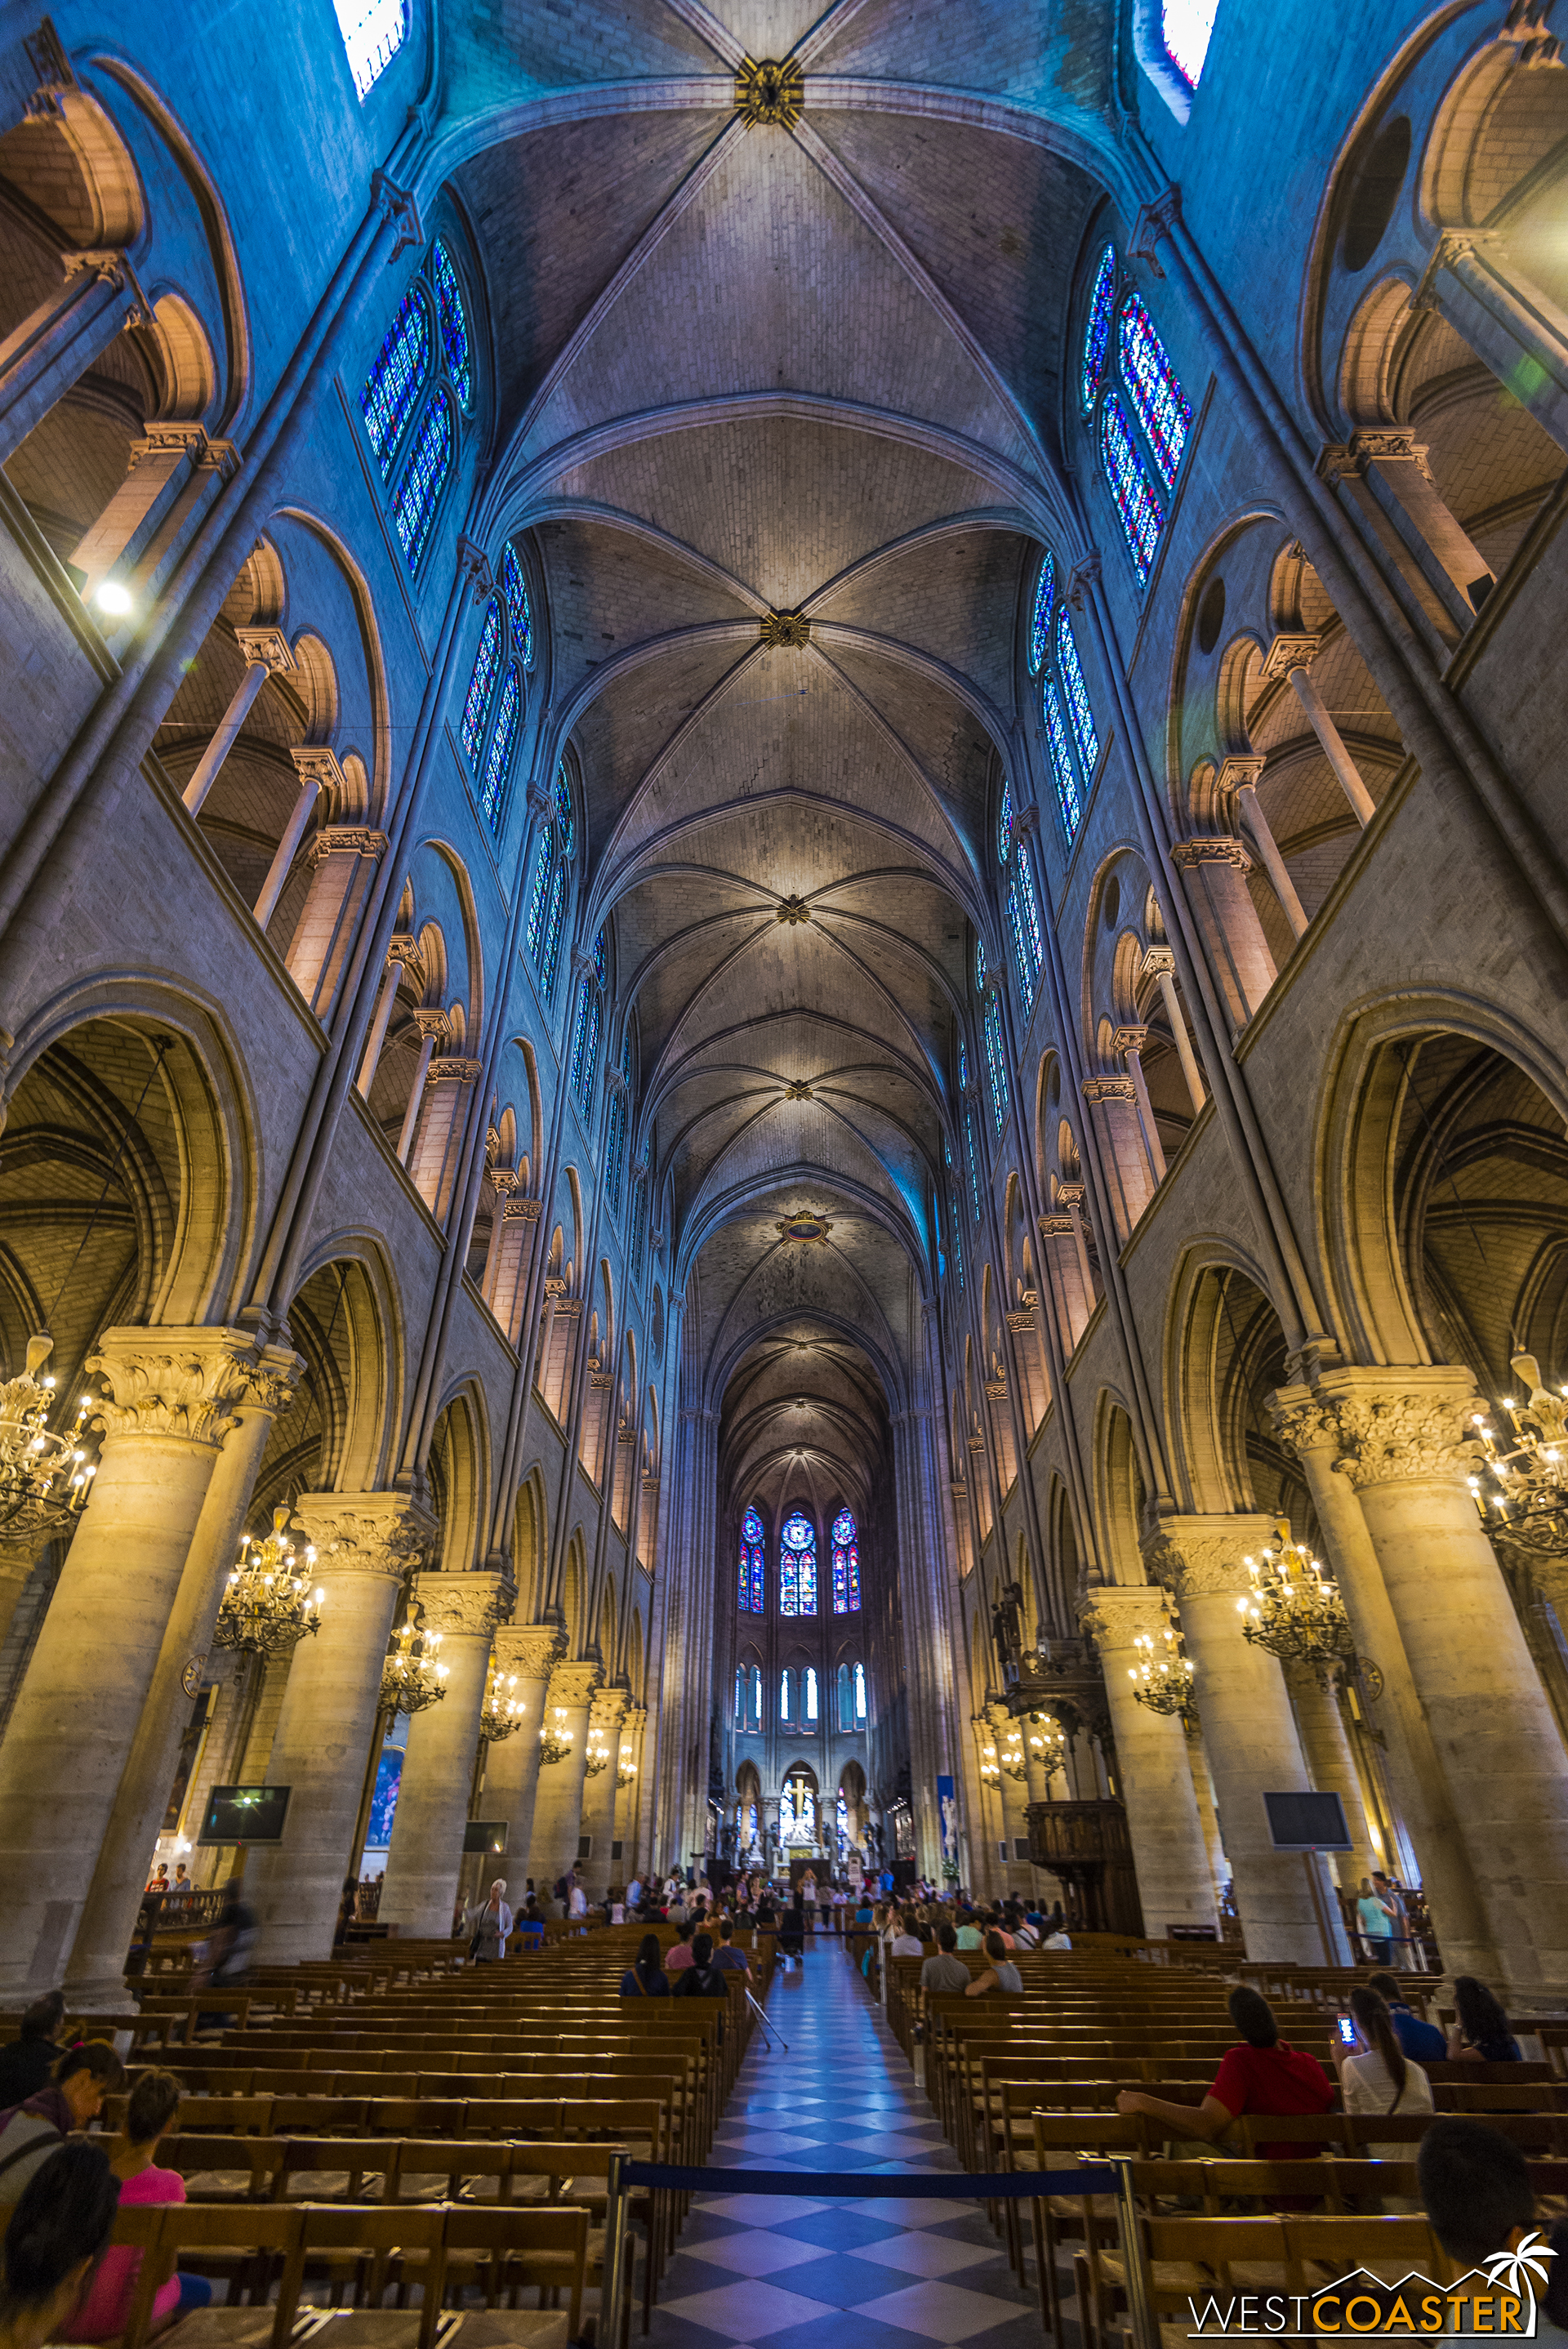 The towering, vaulted interior is incredibly iconic and photogenic.